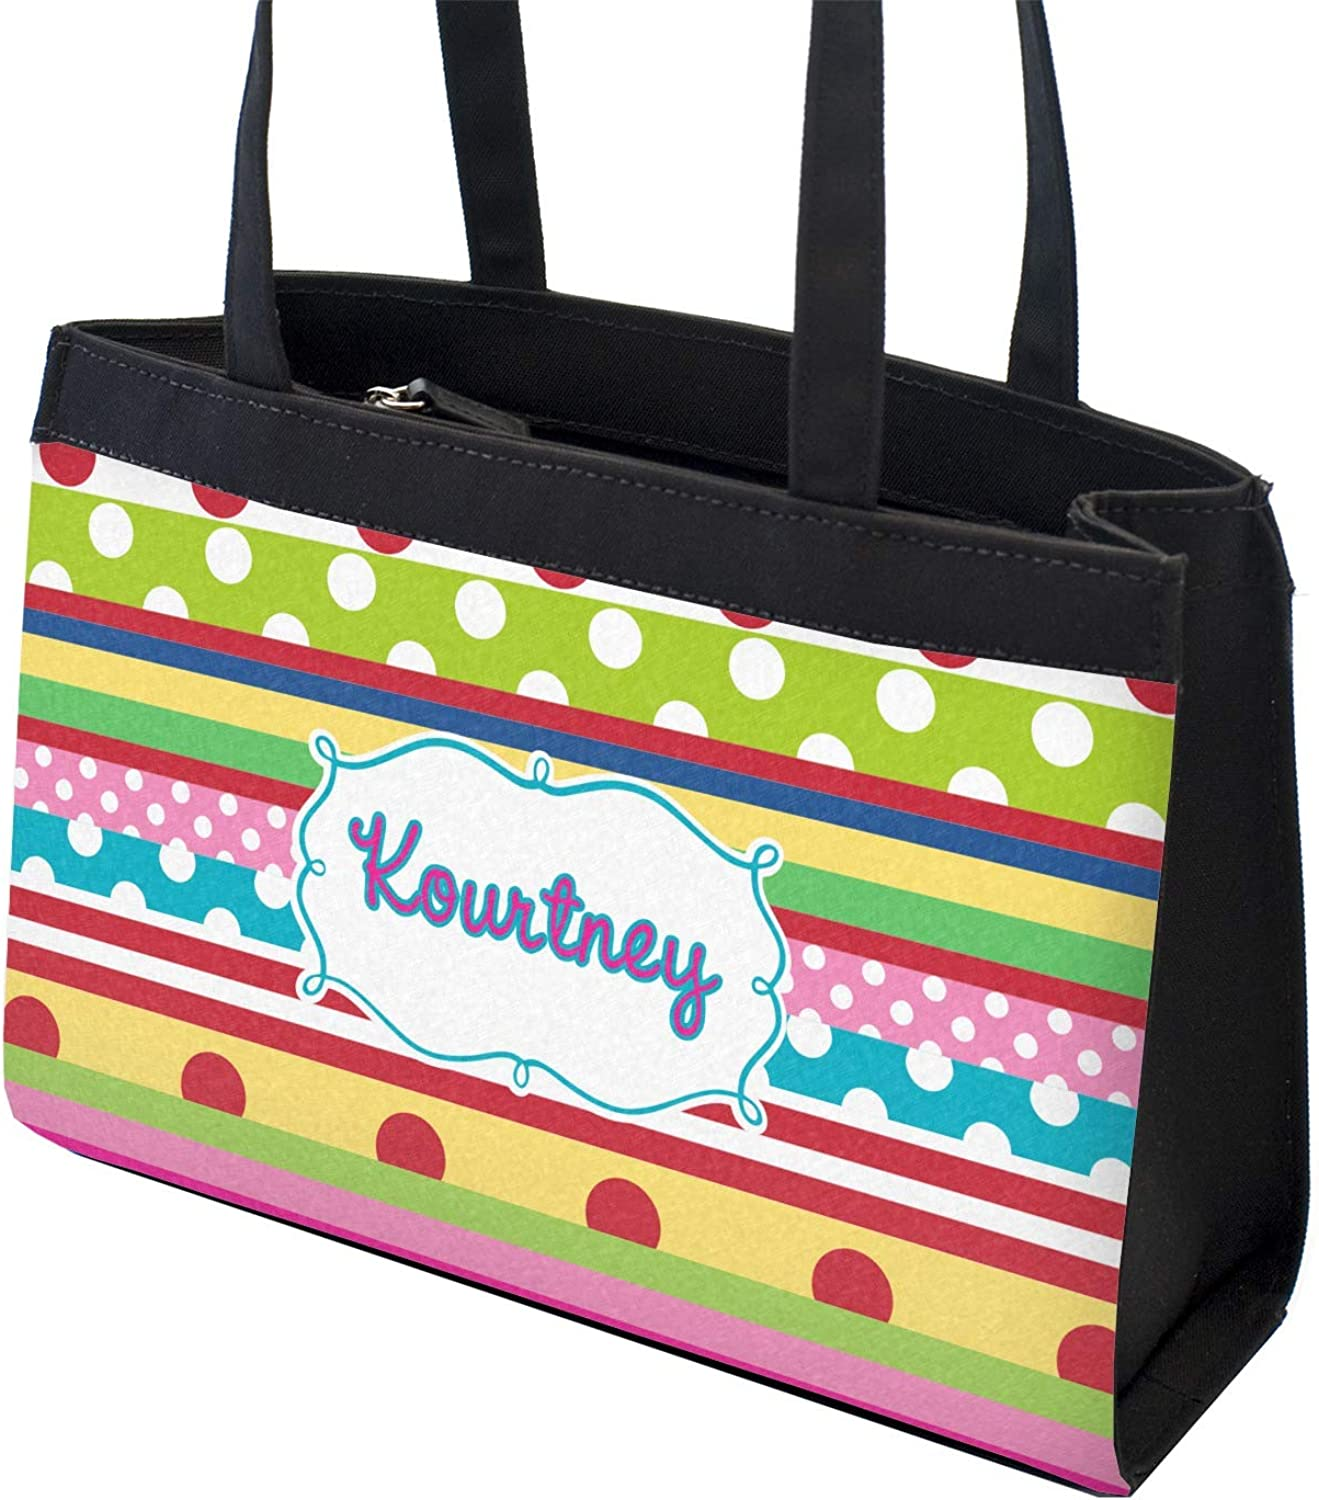 Personalized Front /& Back Ribbons Zippered Everyday Tote